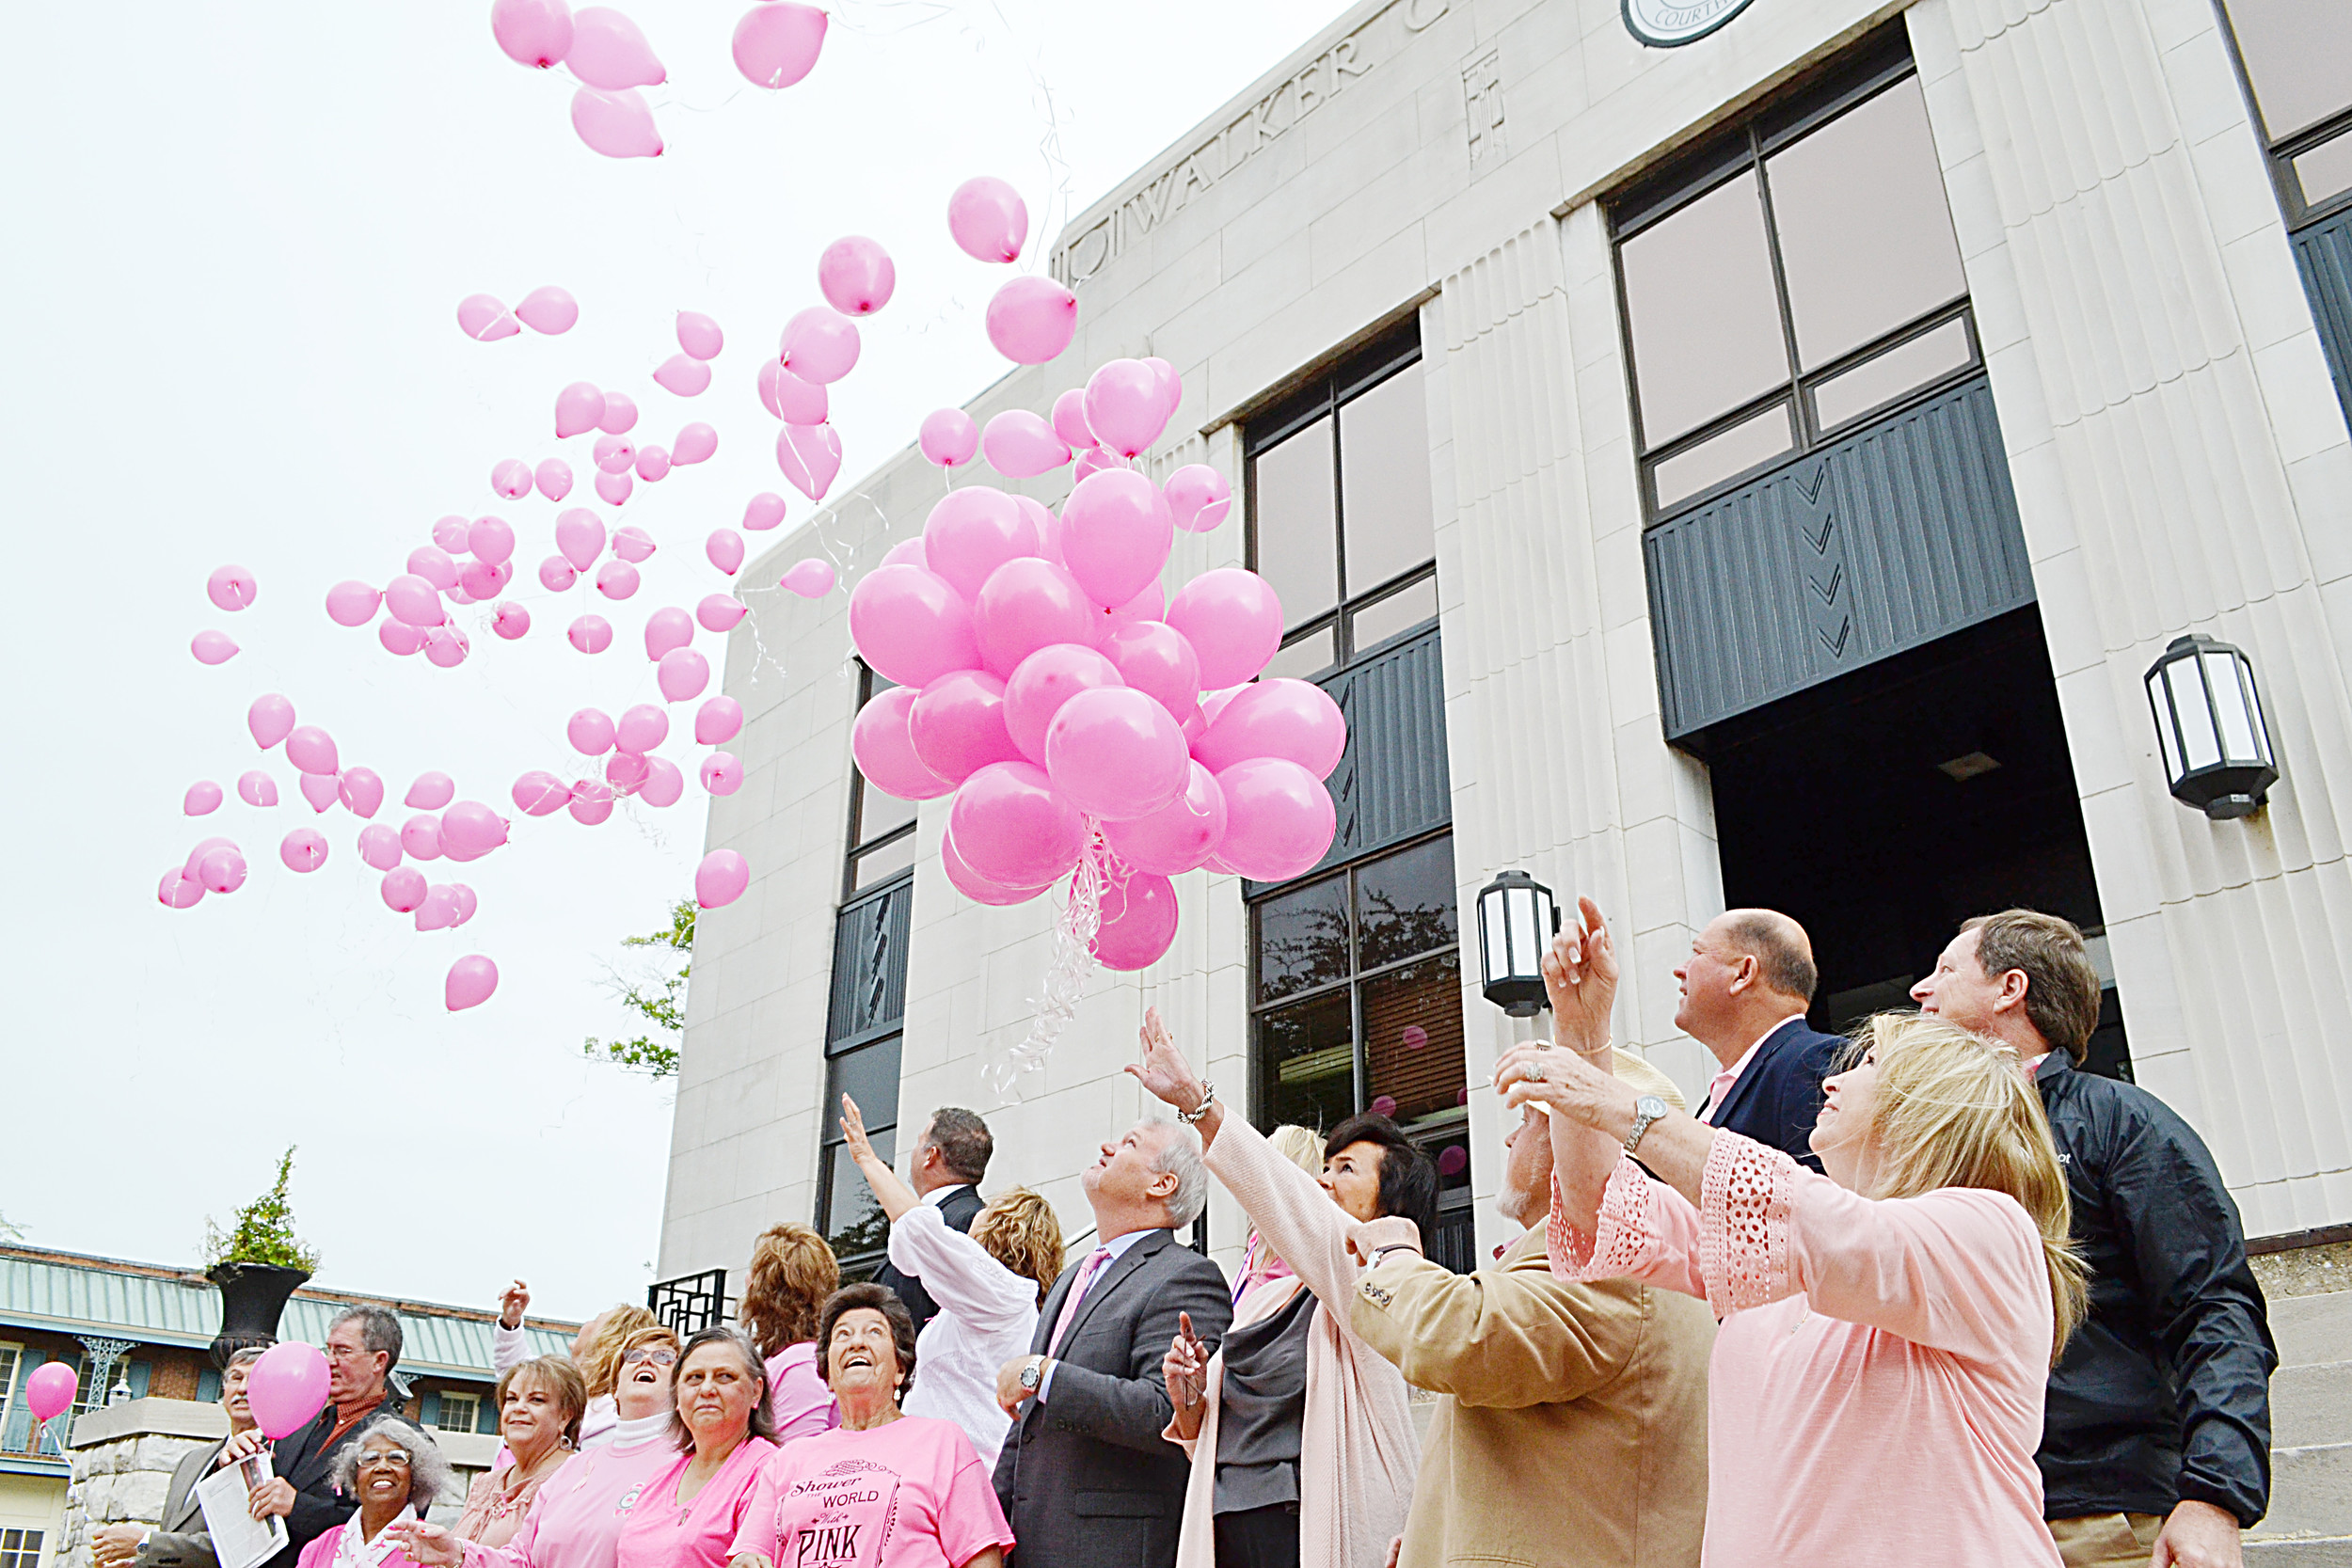 Cancer survivors the Walker County Commission and other county officials released pink balloons on the steps of the Walker County Courthouse on Monday to note that October is Breast Cancer Awareness Month. The commission earlier passed a resolution to